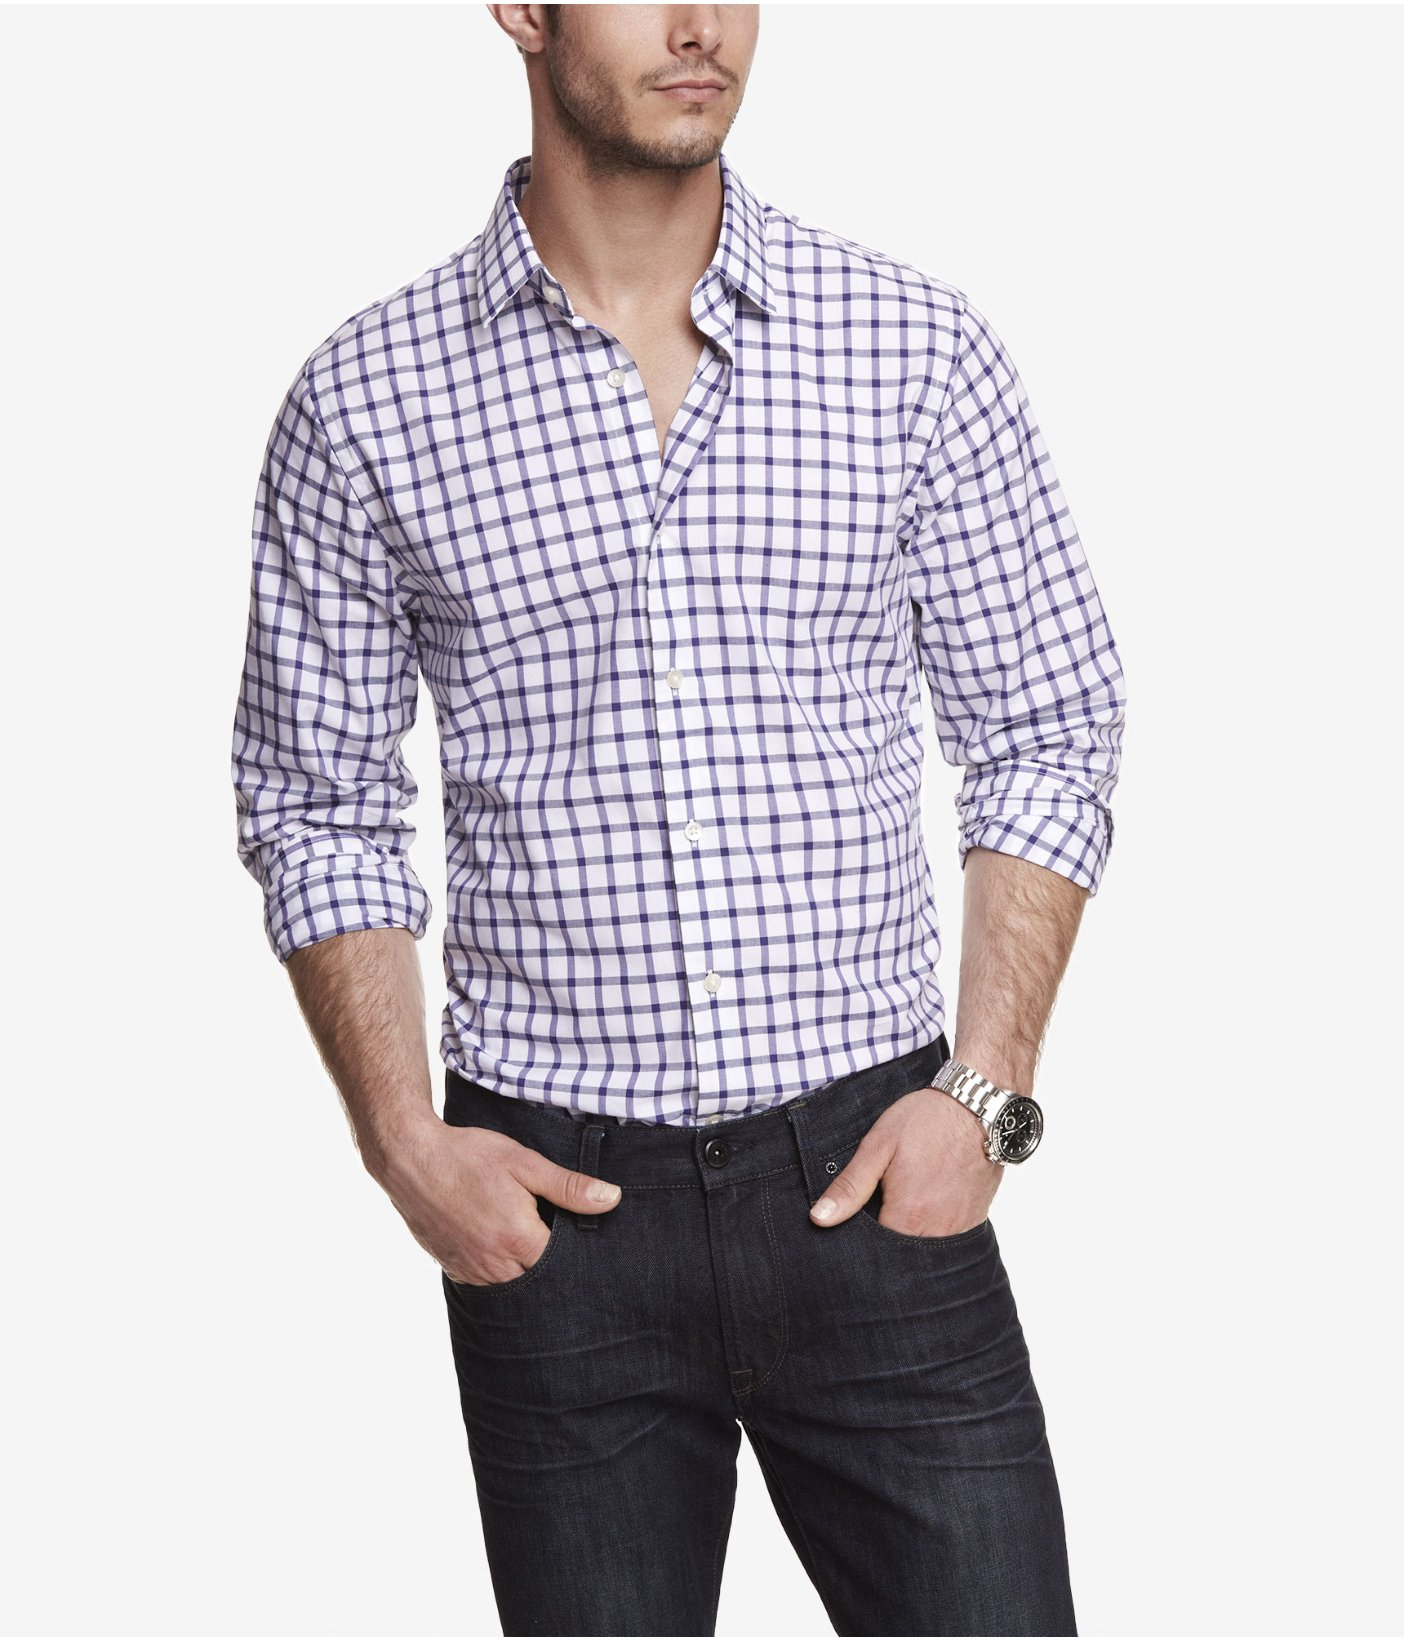 lyst express extra slim plaid dress shirt in purple for men